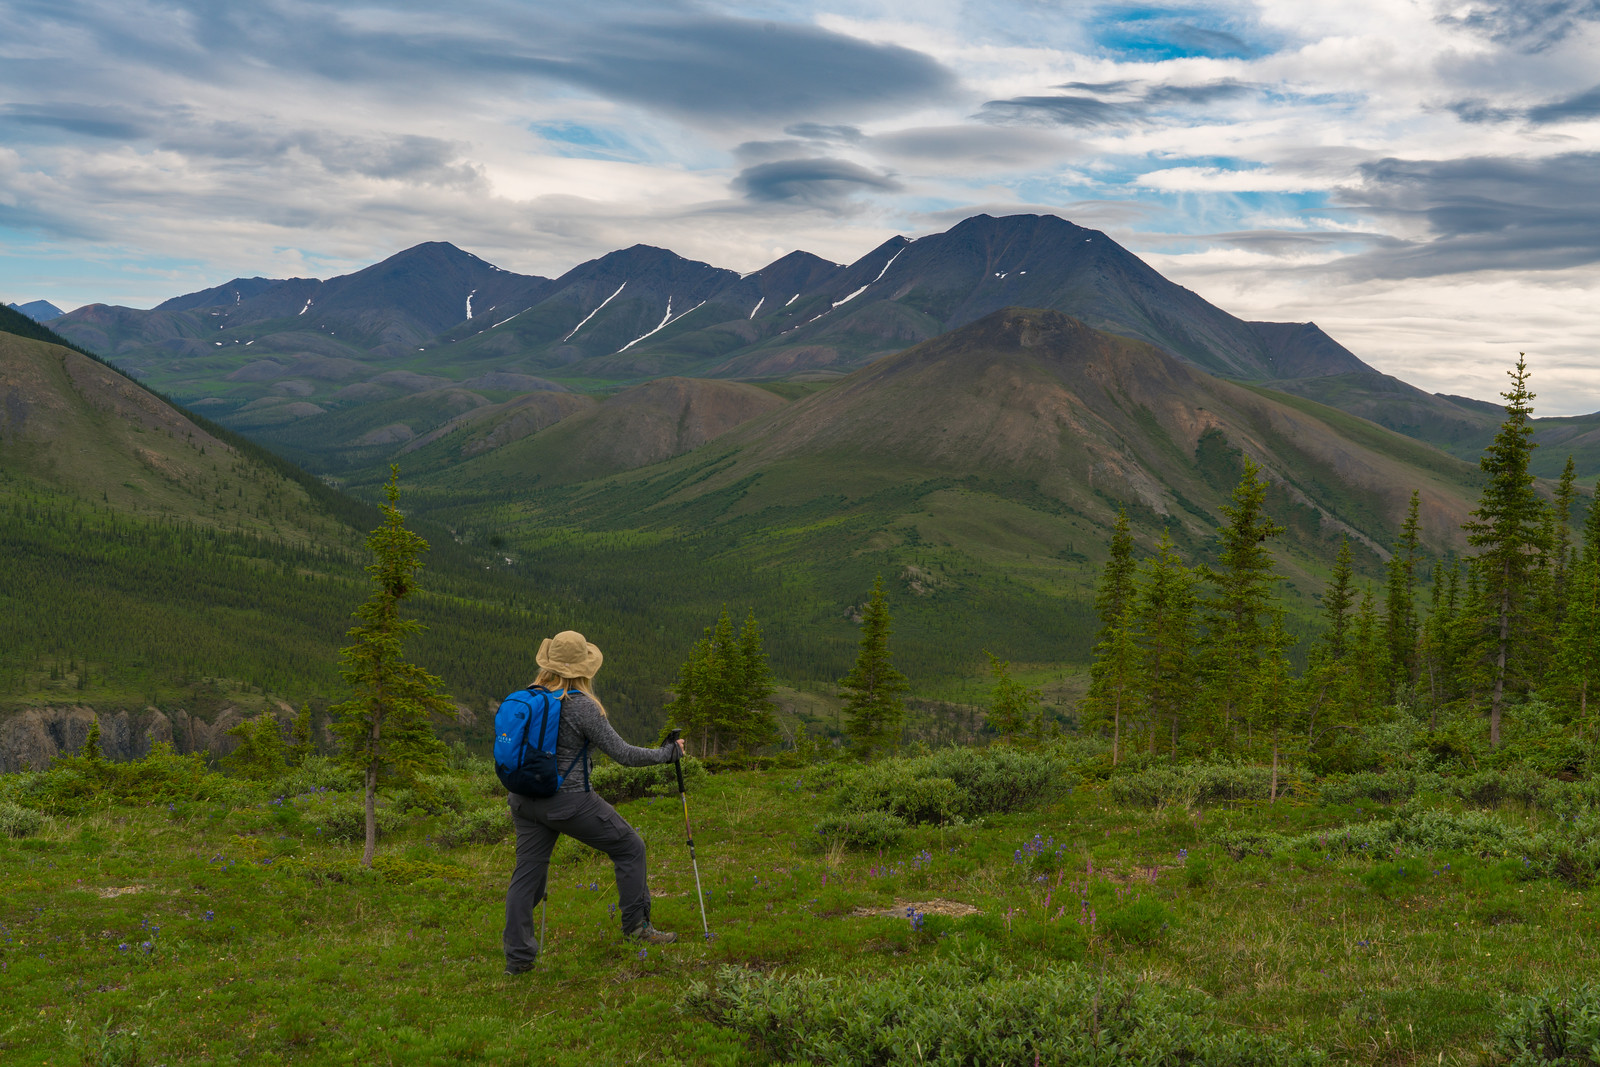 Enjoying the beauty of the far reaches of the Yukon, Canada